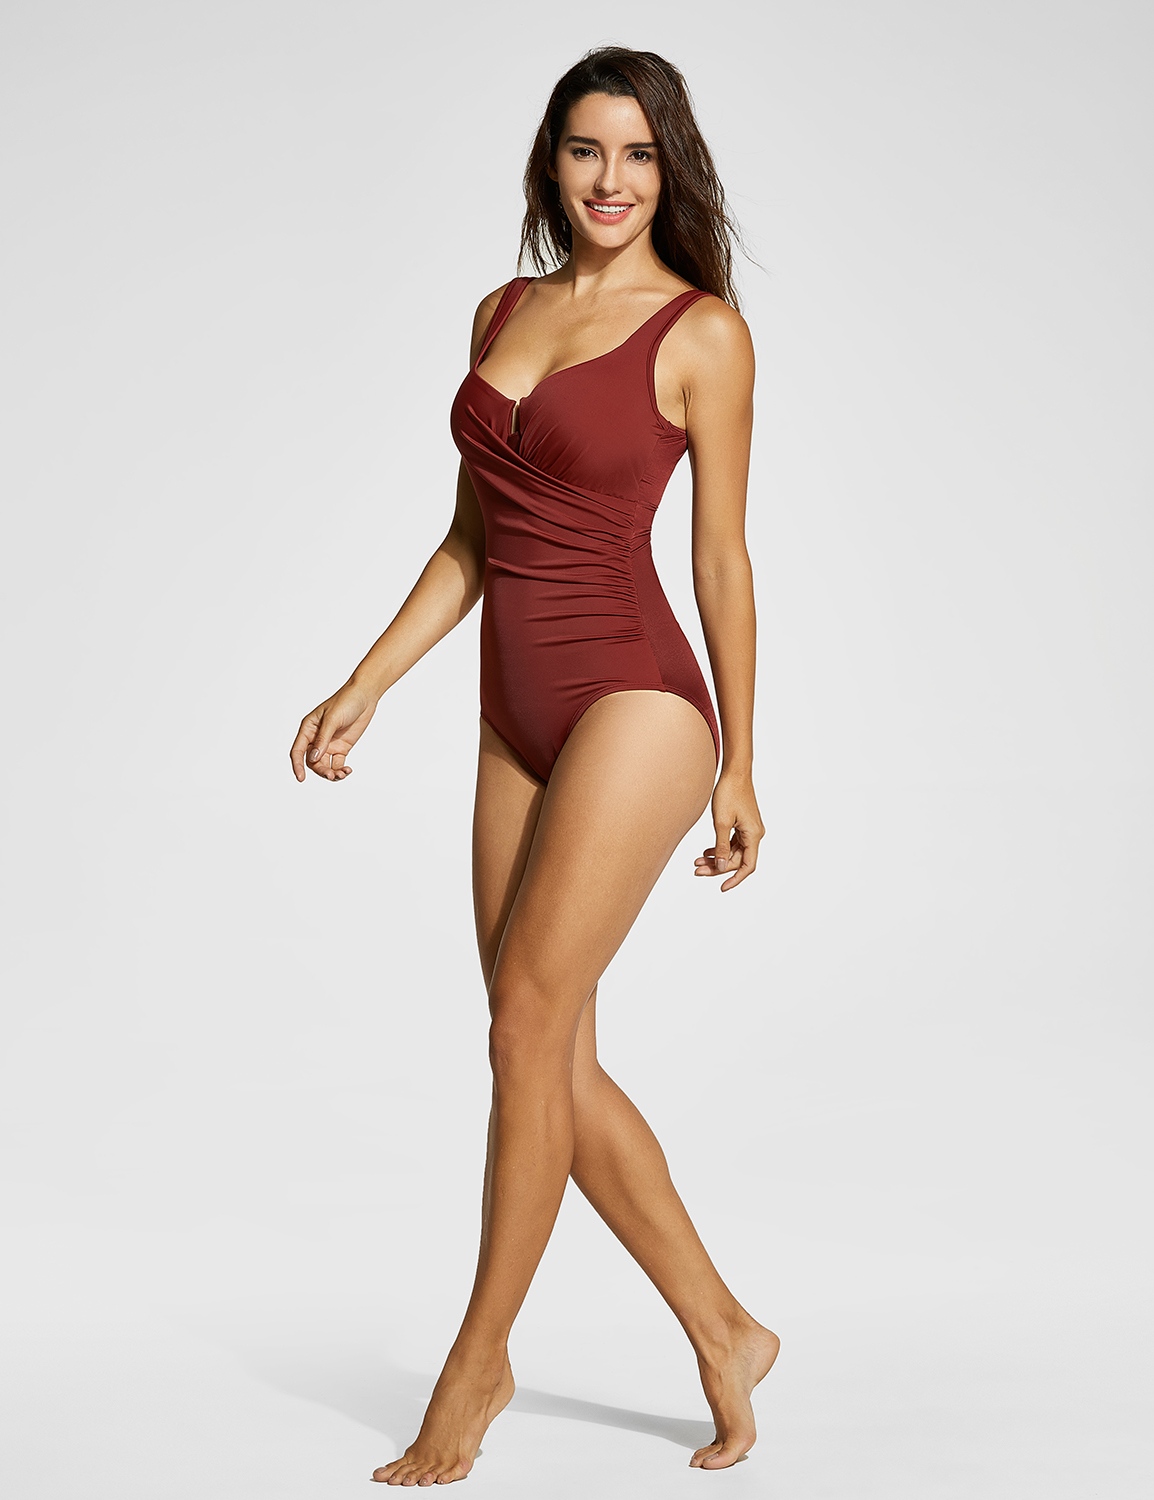 0539677de3670 Women's Ruched Padded Slimming Swimsuit with Underwire One Piece | eBay